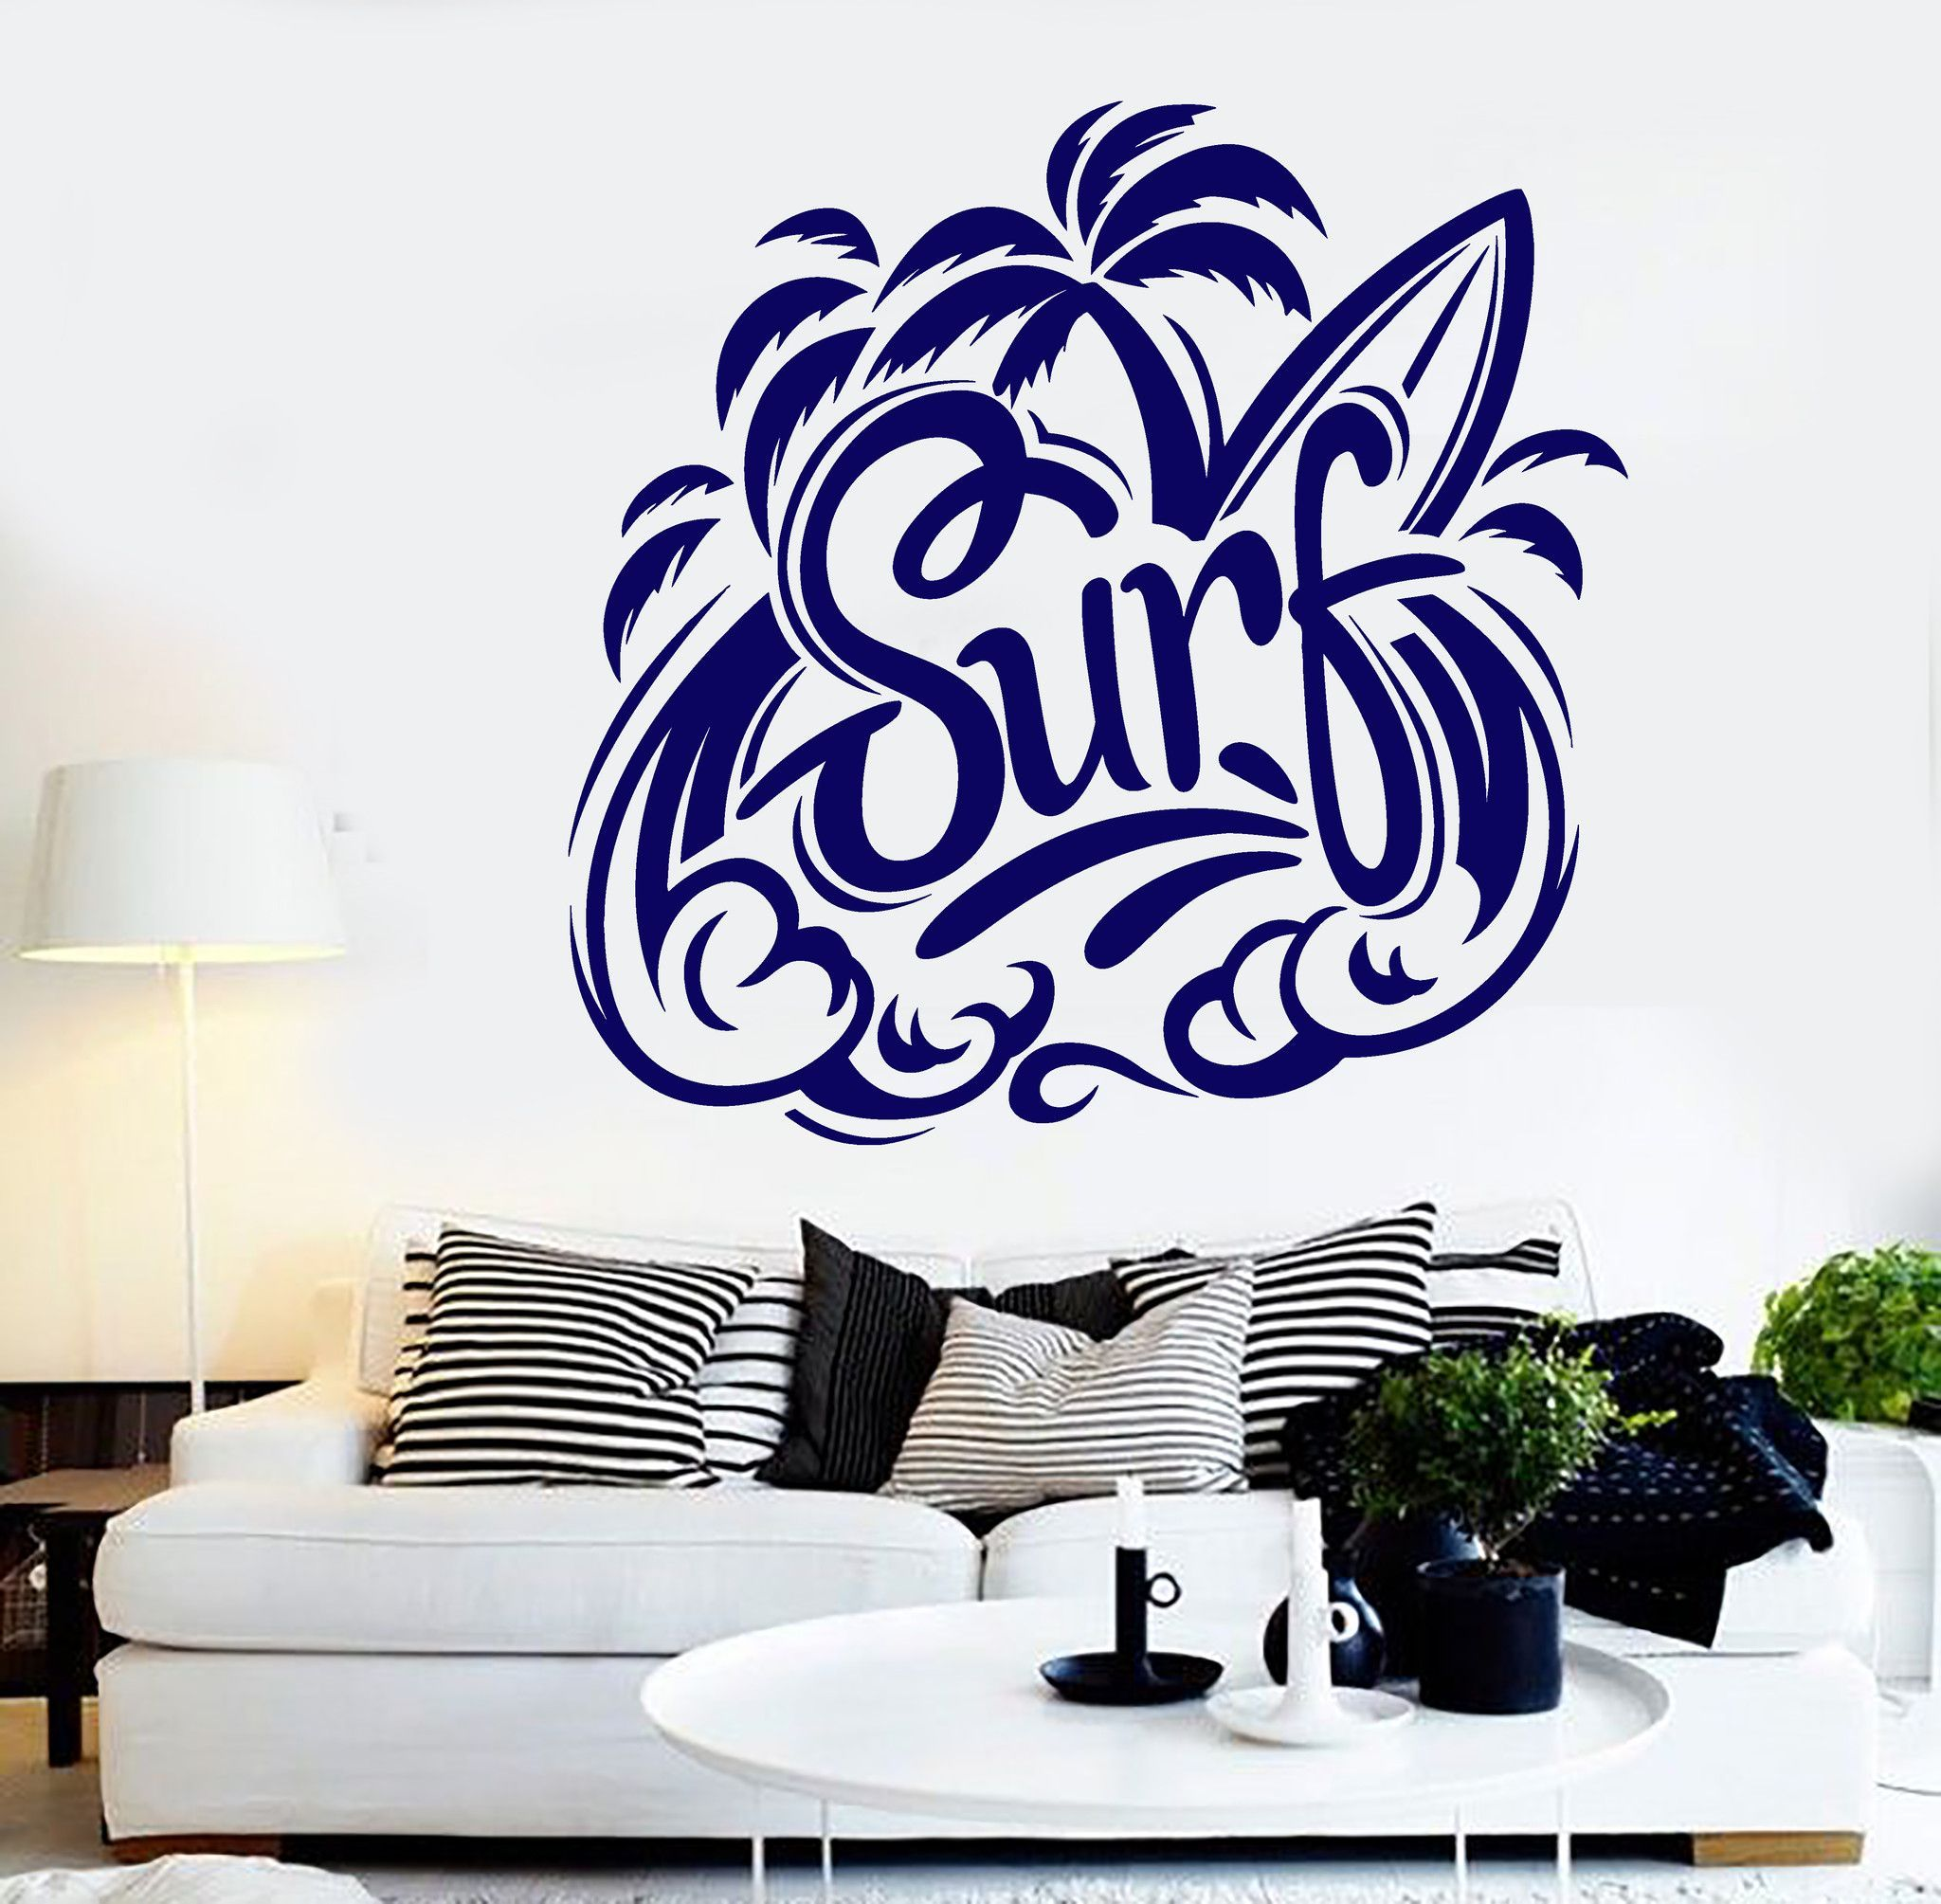 Vinyl Wall Decal Beach Style Surfing Surfer Water Sports